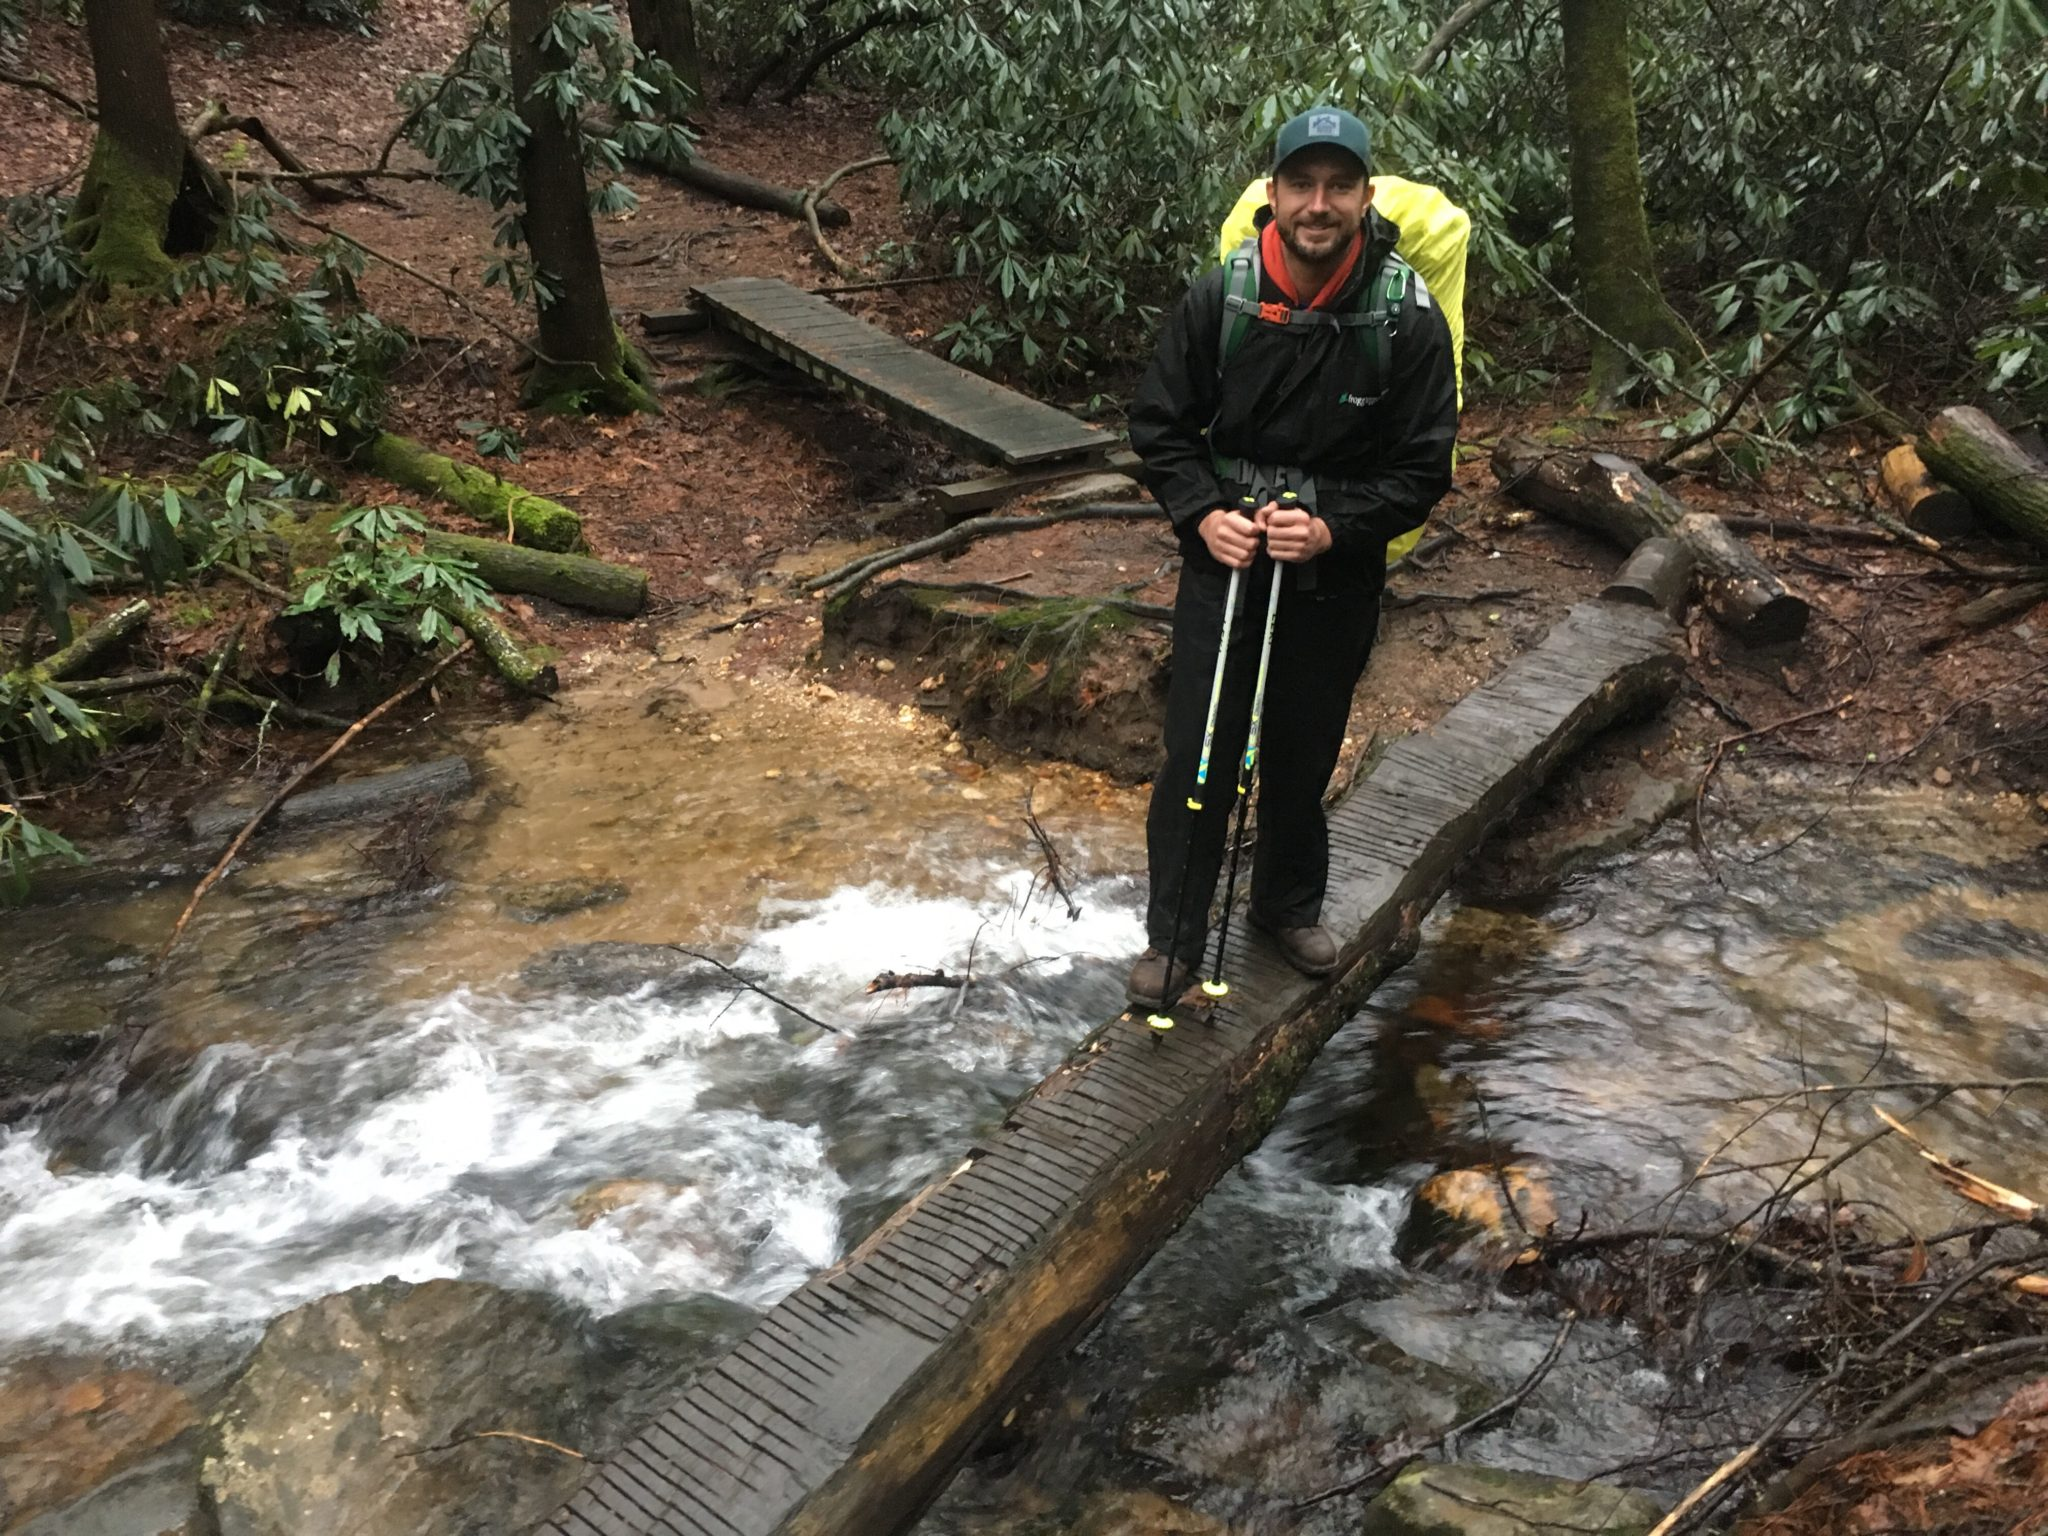 Michael crossing a stream, roaring from the rain